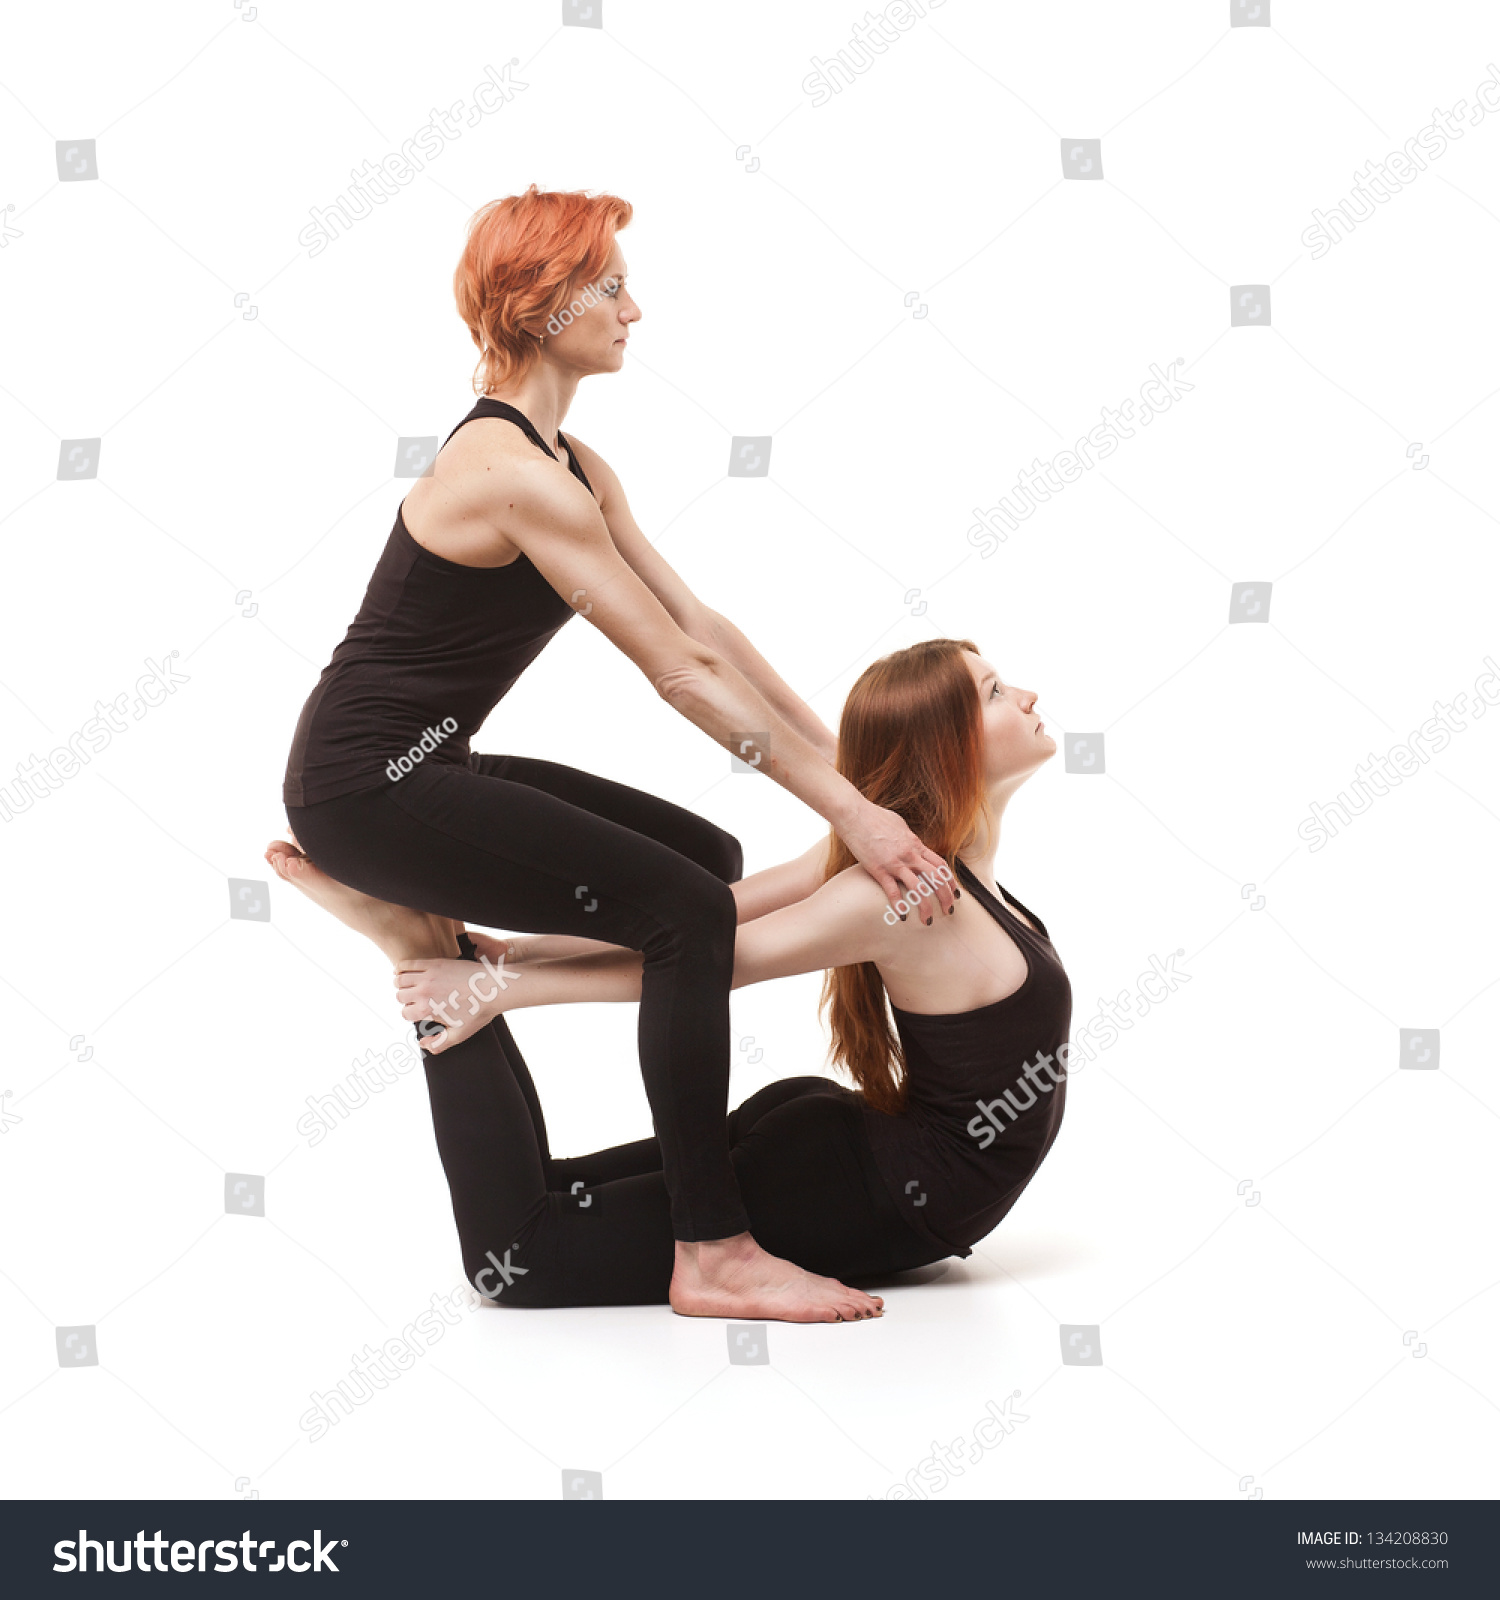 2 Person Hard Yoga Poses